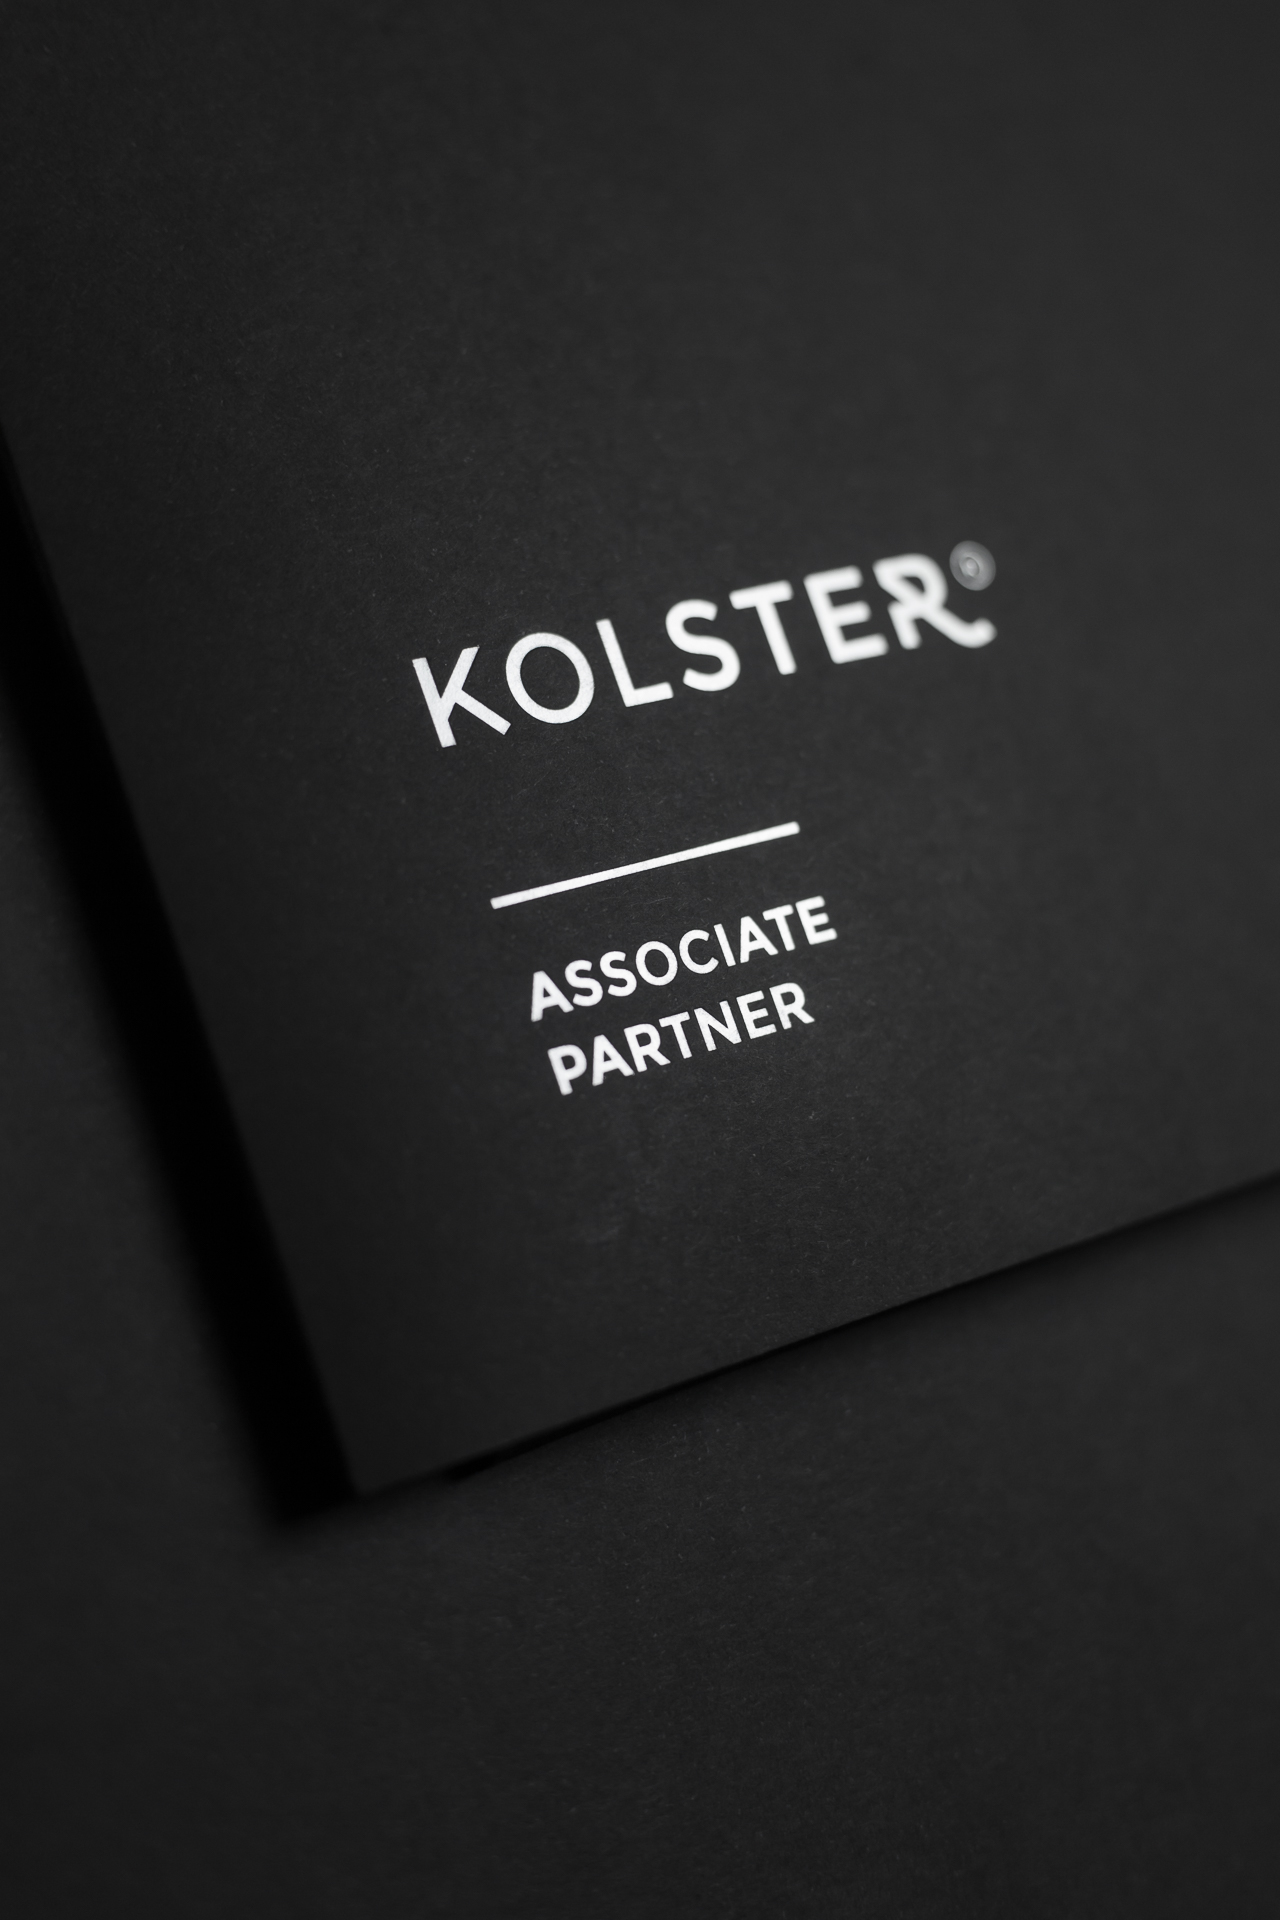 Kolster_Associate_Partner_folder_logo